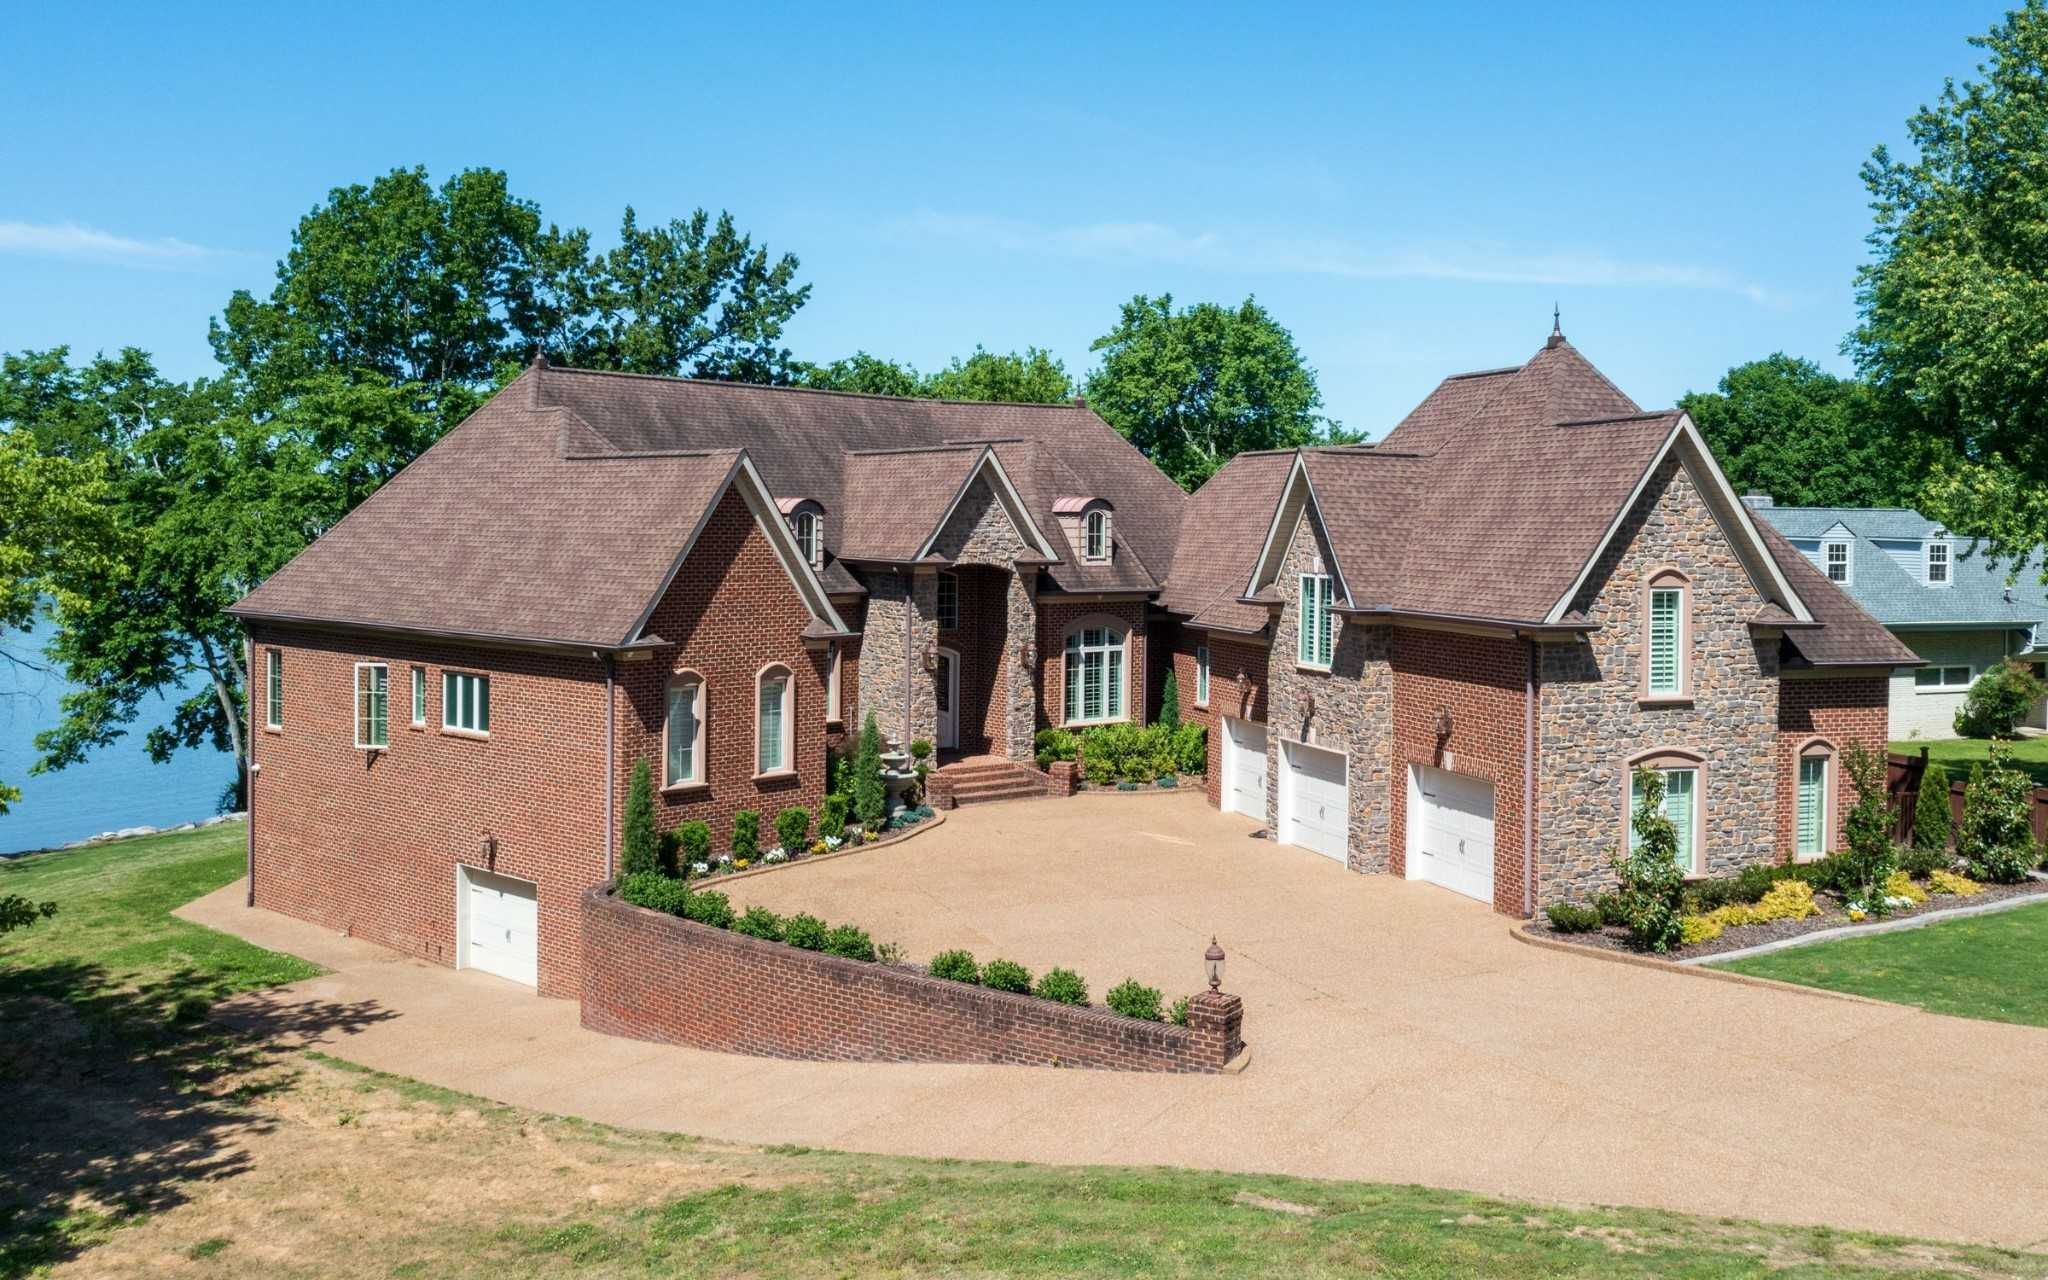 $2,800,000 - 5Br/6Ba -  for Sale in Lake Park Resub, Gallatin